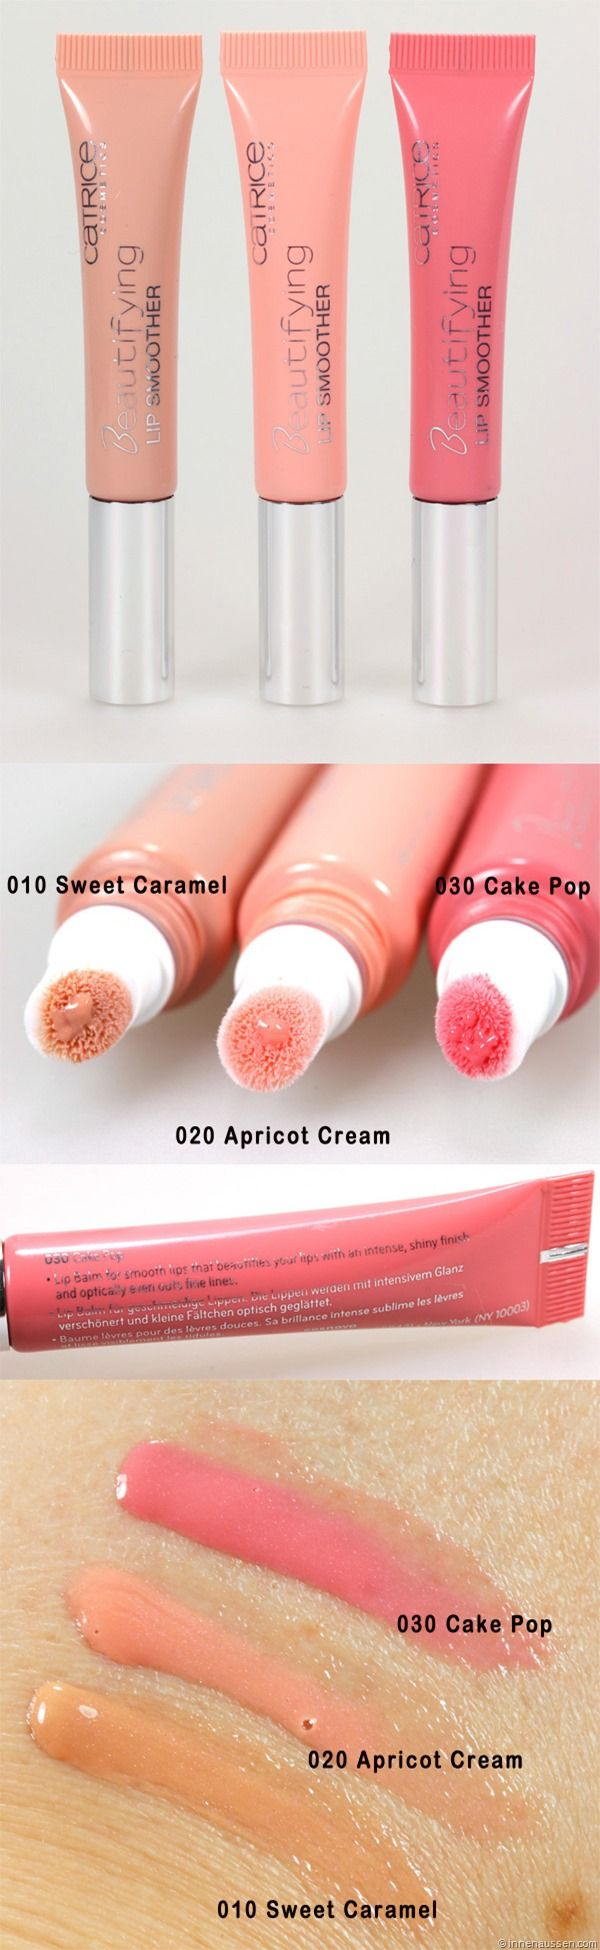 Photo of Catrice Beautifying Lip Smoothers versus Clarins Instant Light Natural Lip Perfector – InnenAussen